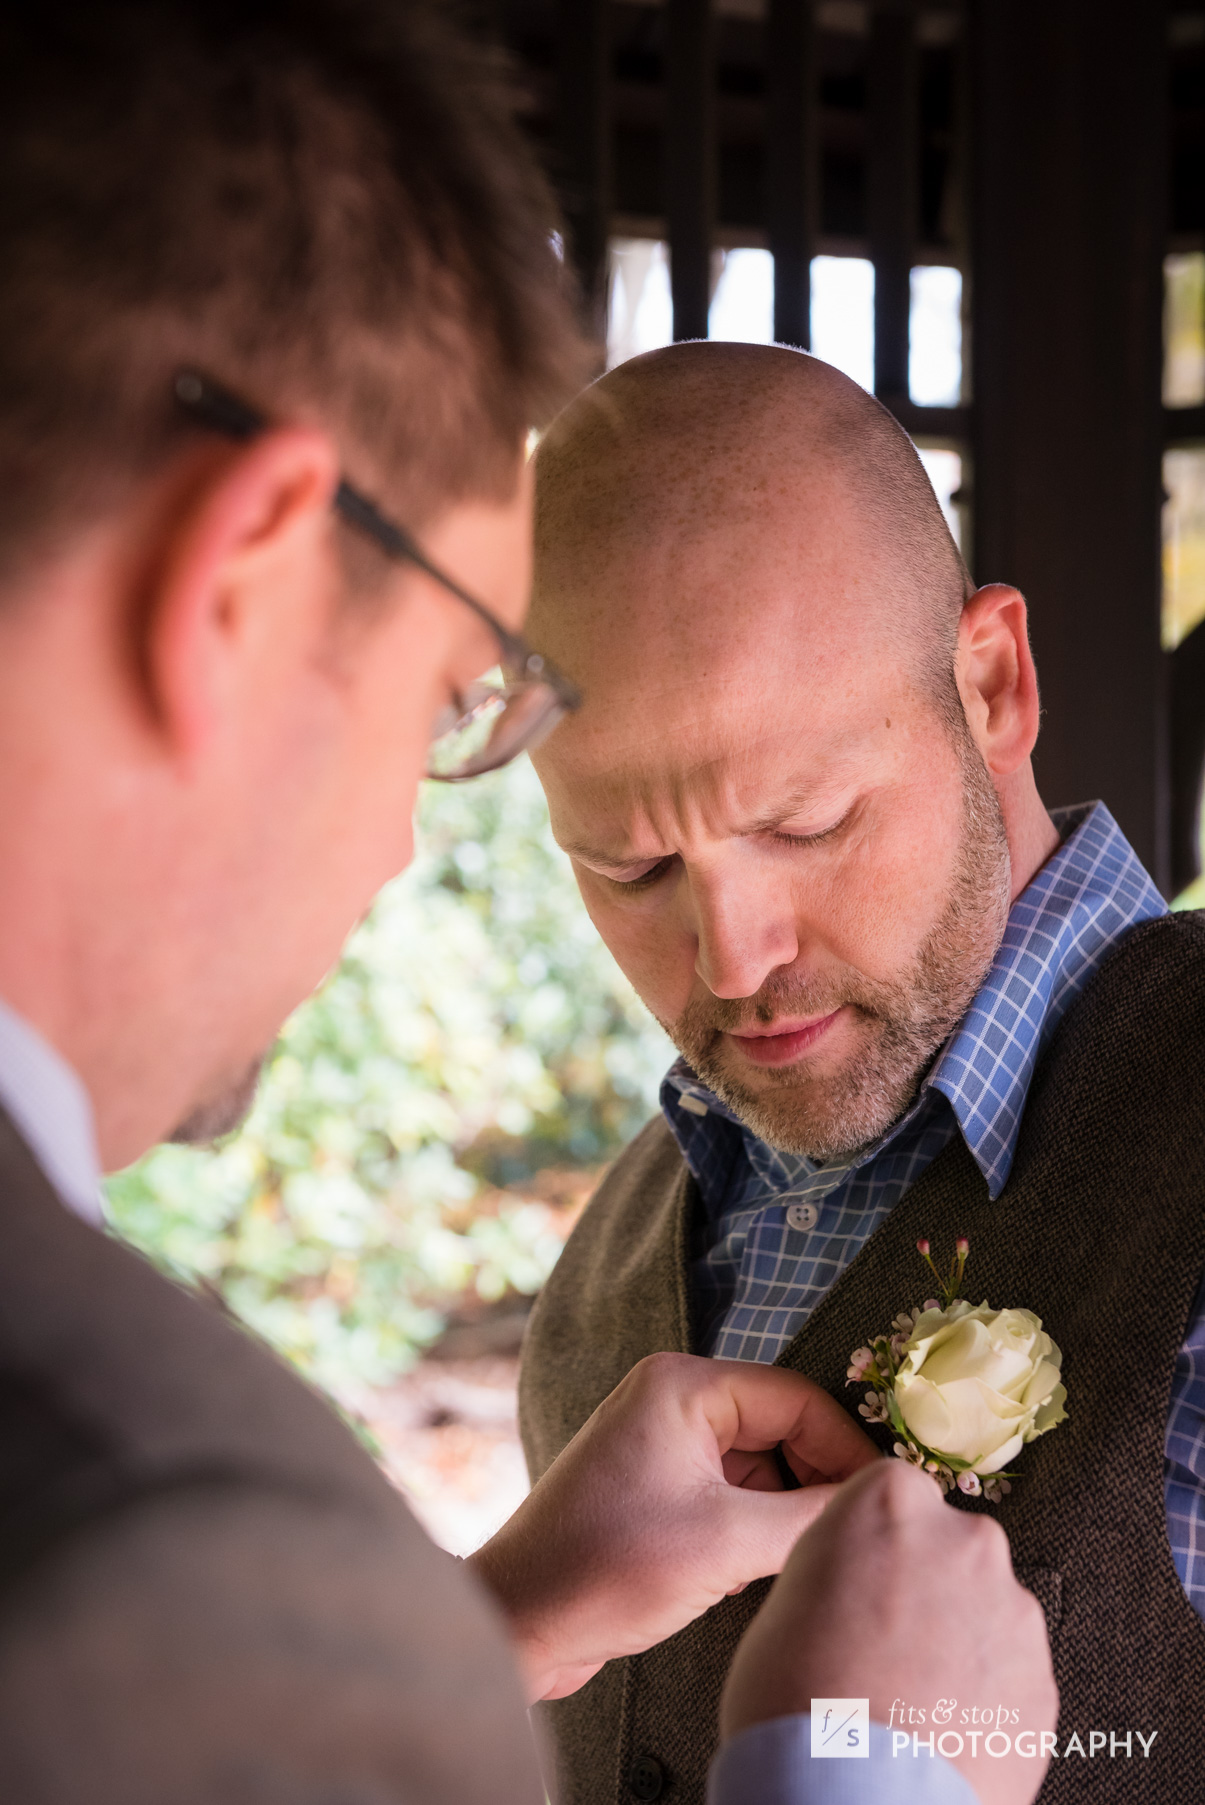 A young groom allows his friend to pin a boutonniere on his chest.